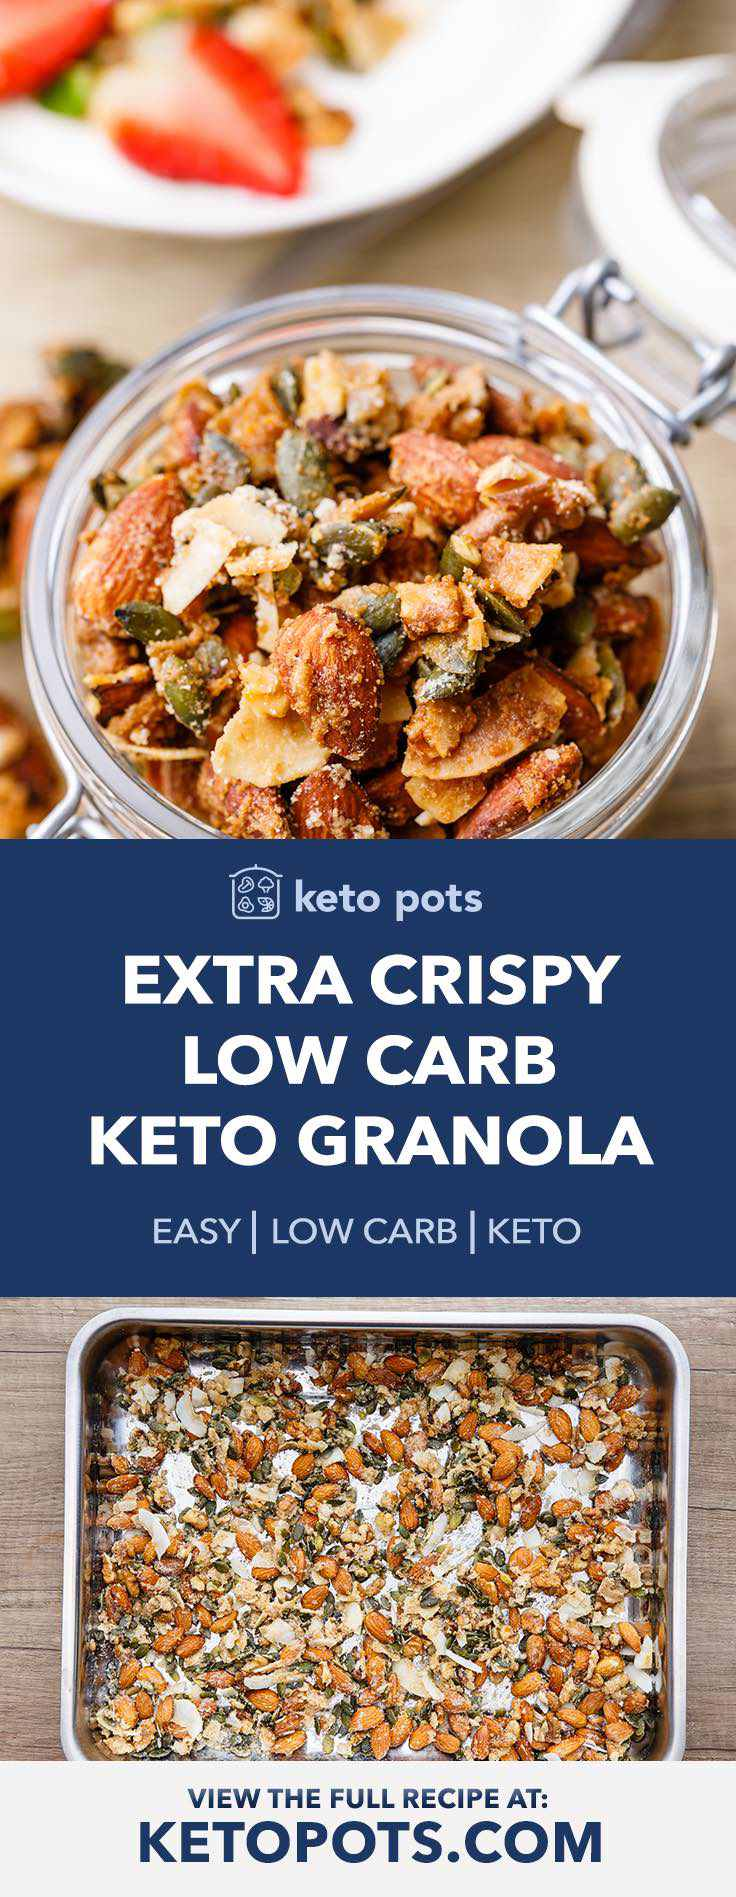 How to make the best crispy low carb keto granola.